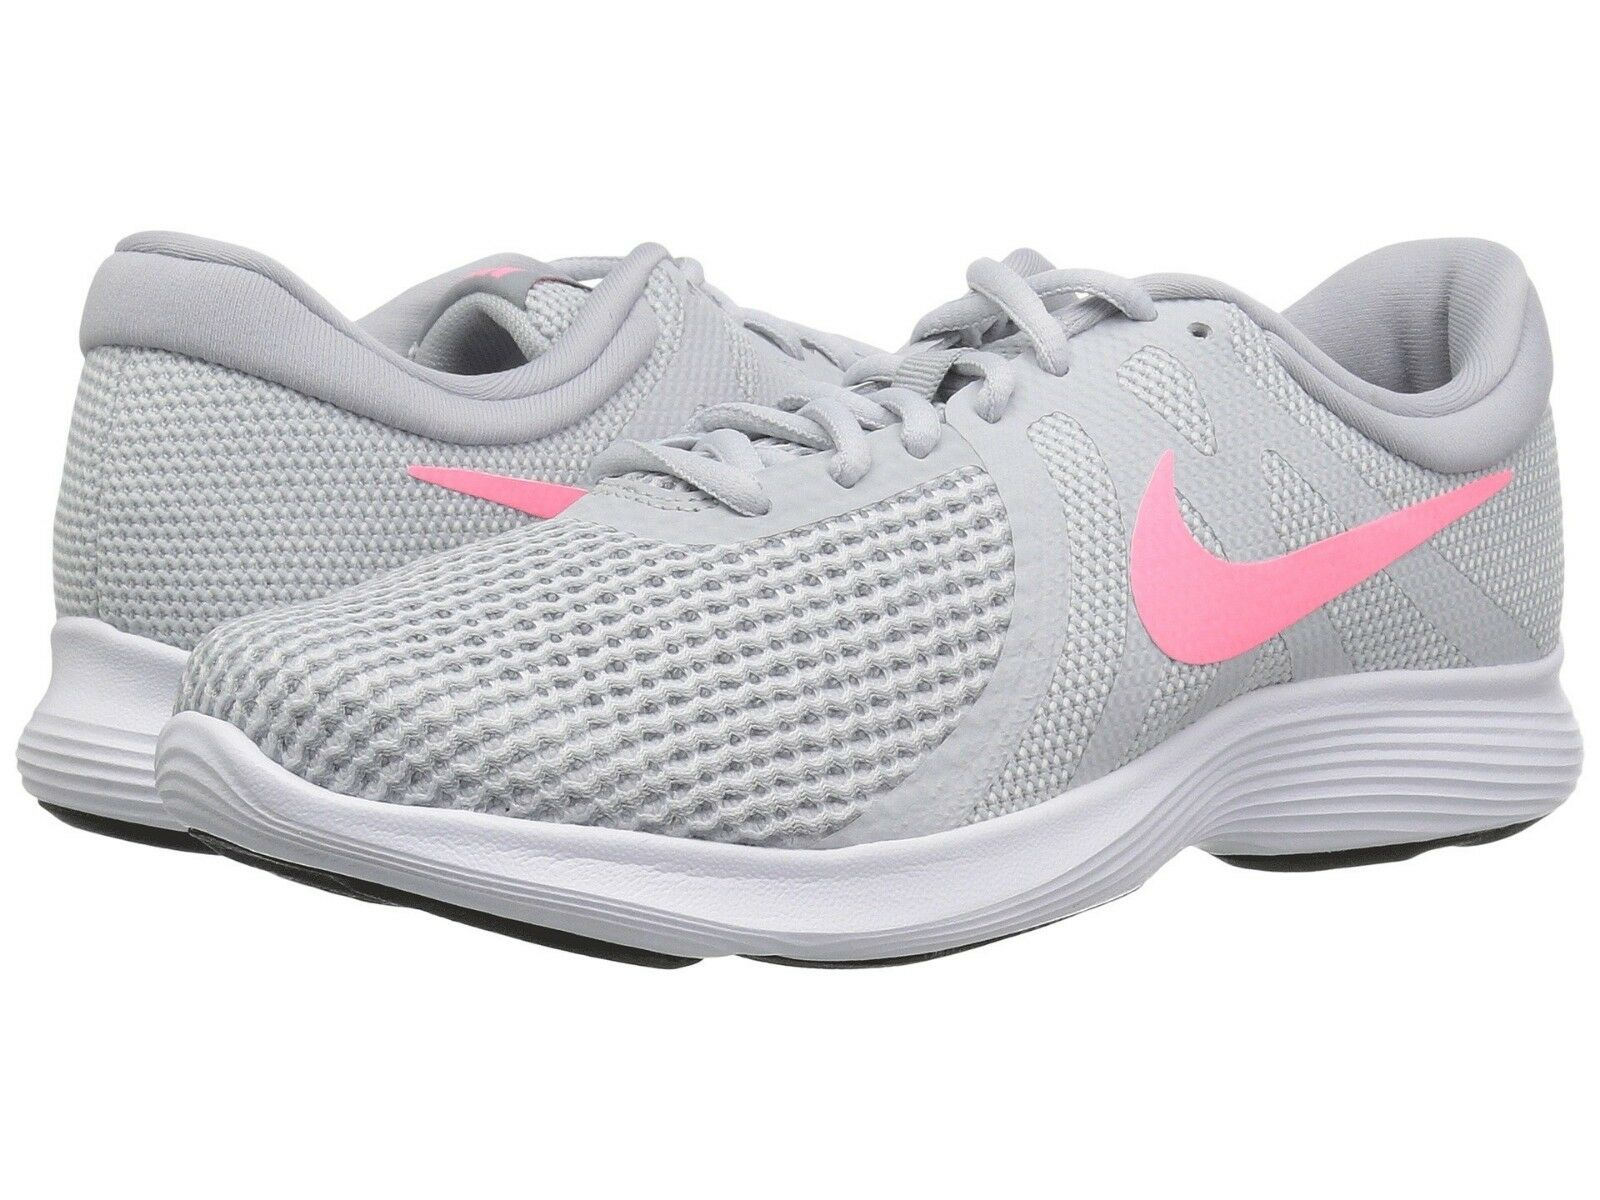 Nike Women's Revolution 4 Running Shoes Pure Platinum Sunset Pulse